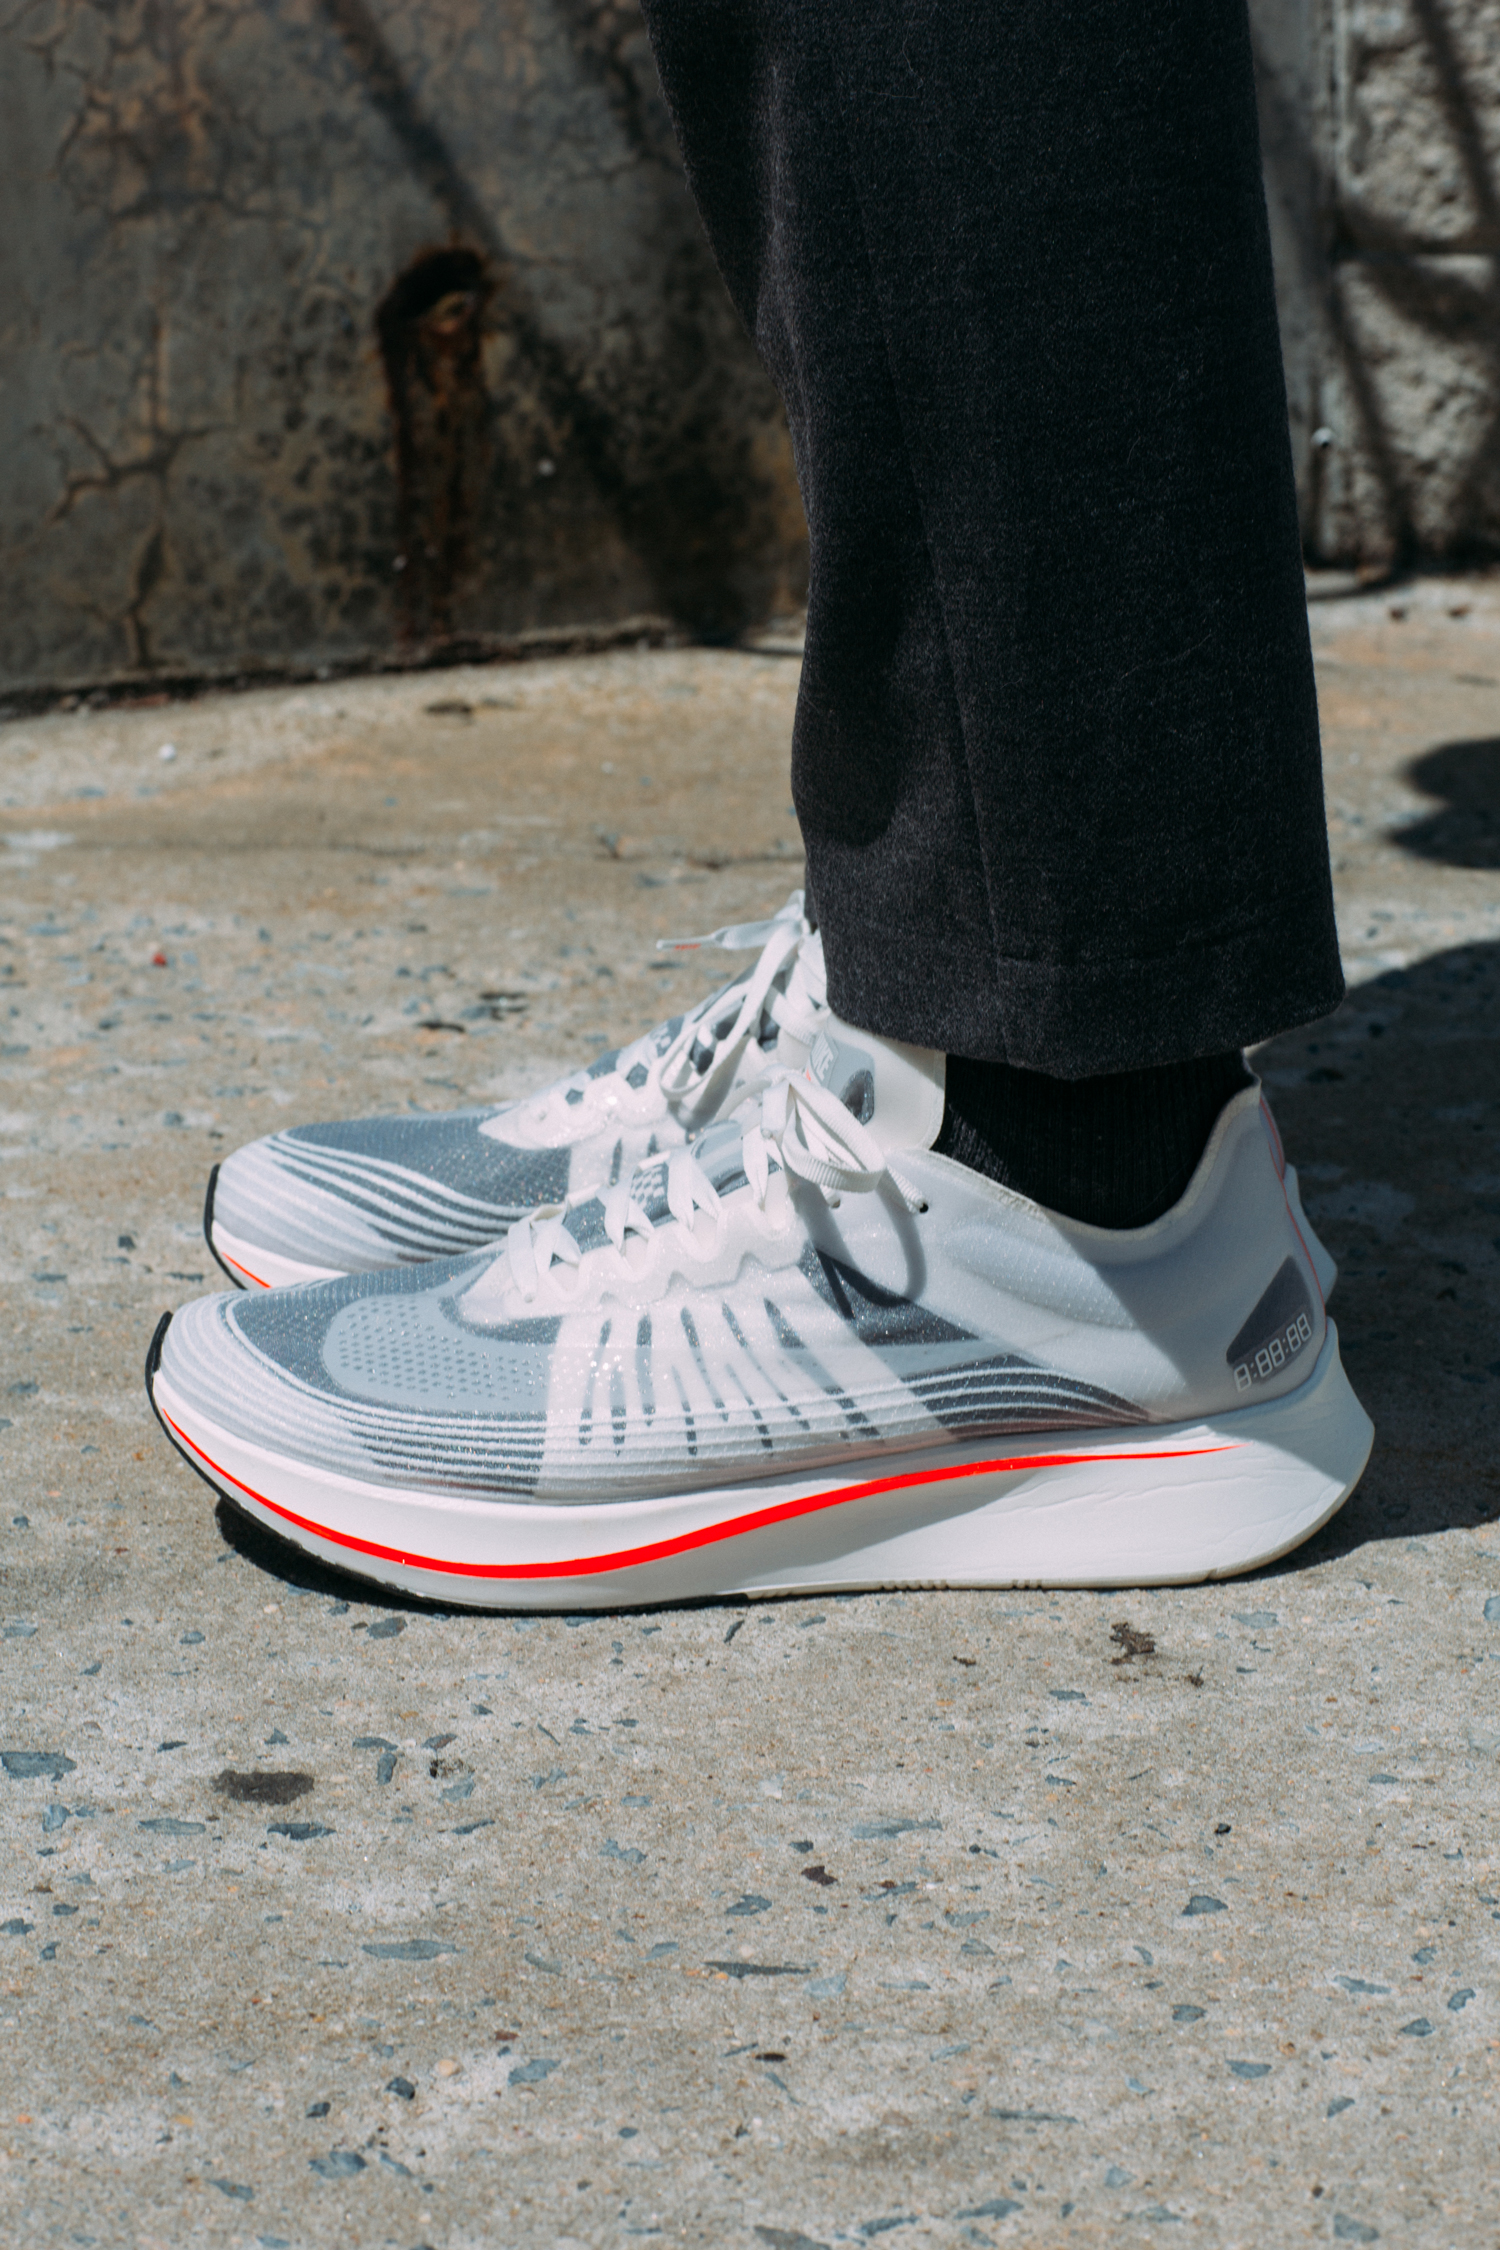 9fccba13d3ca18 You can expect the NikeLab Zoom Fly SP as well as the full range of  breaking2 models to release June 8th.